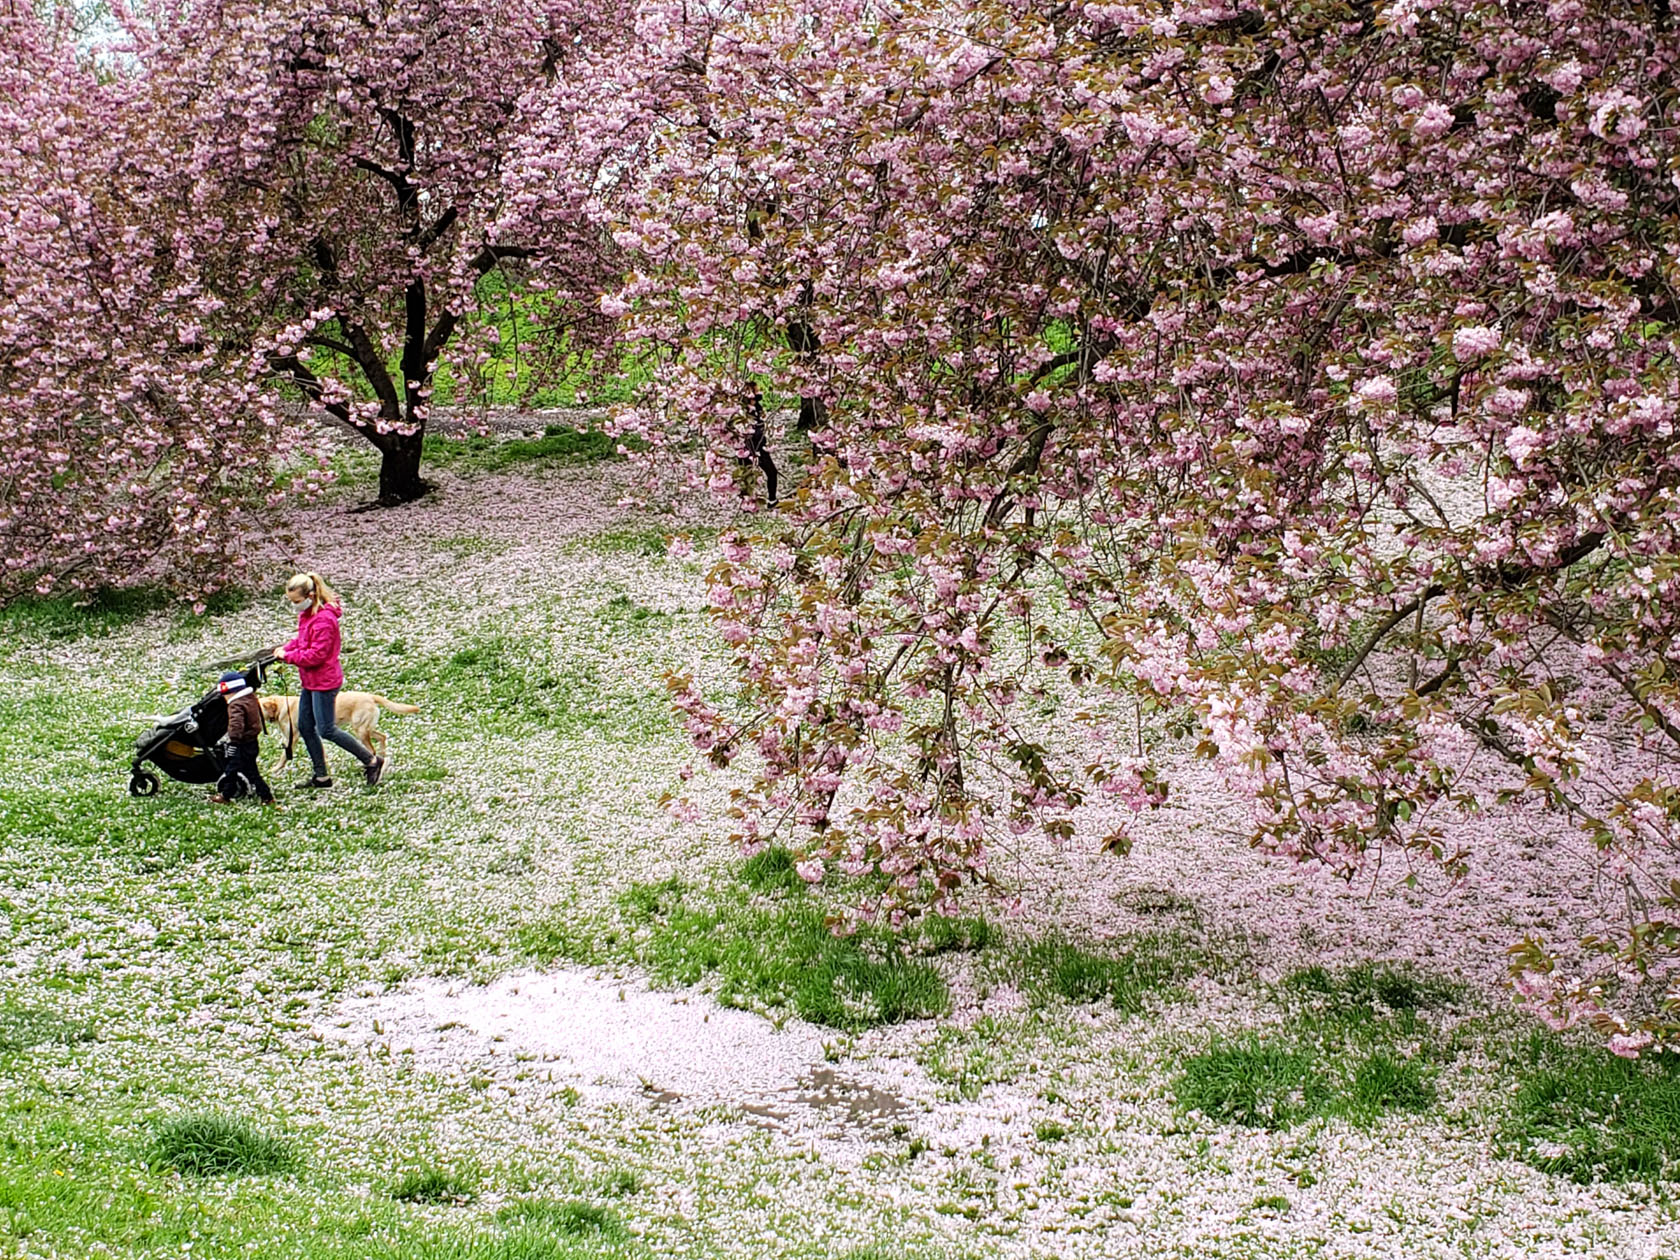 043020-cherry blossoms-woman with stroller-small